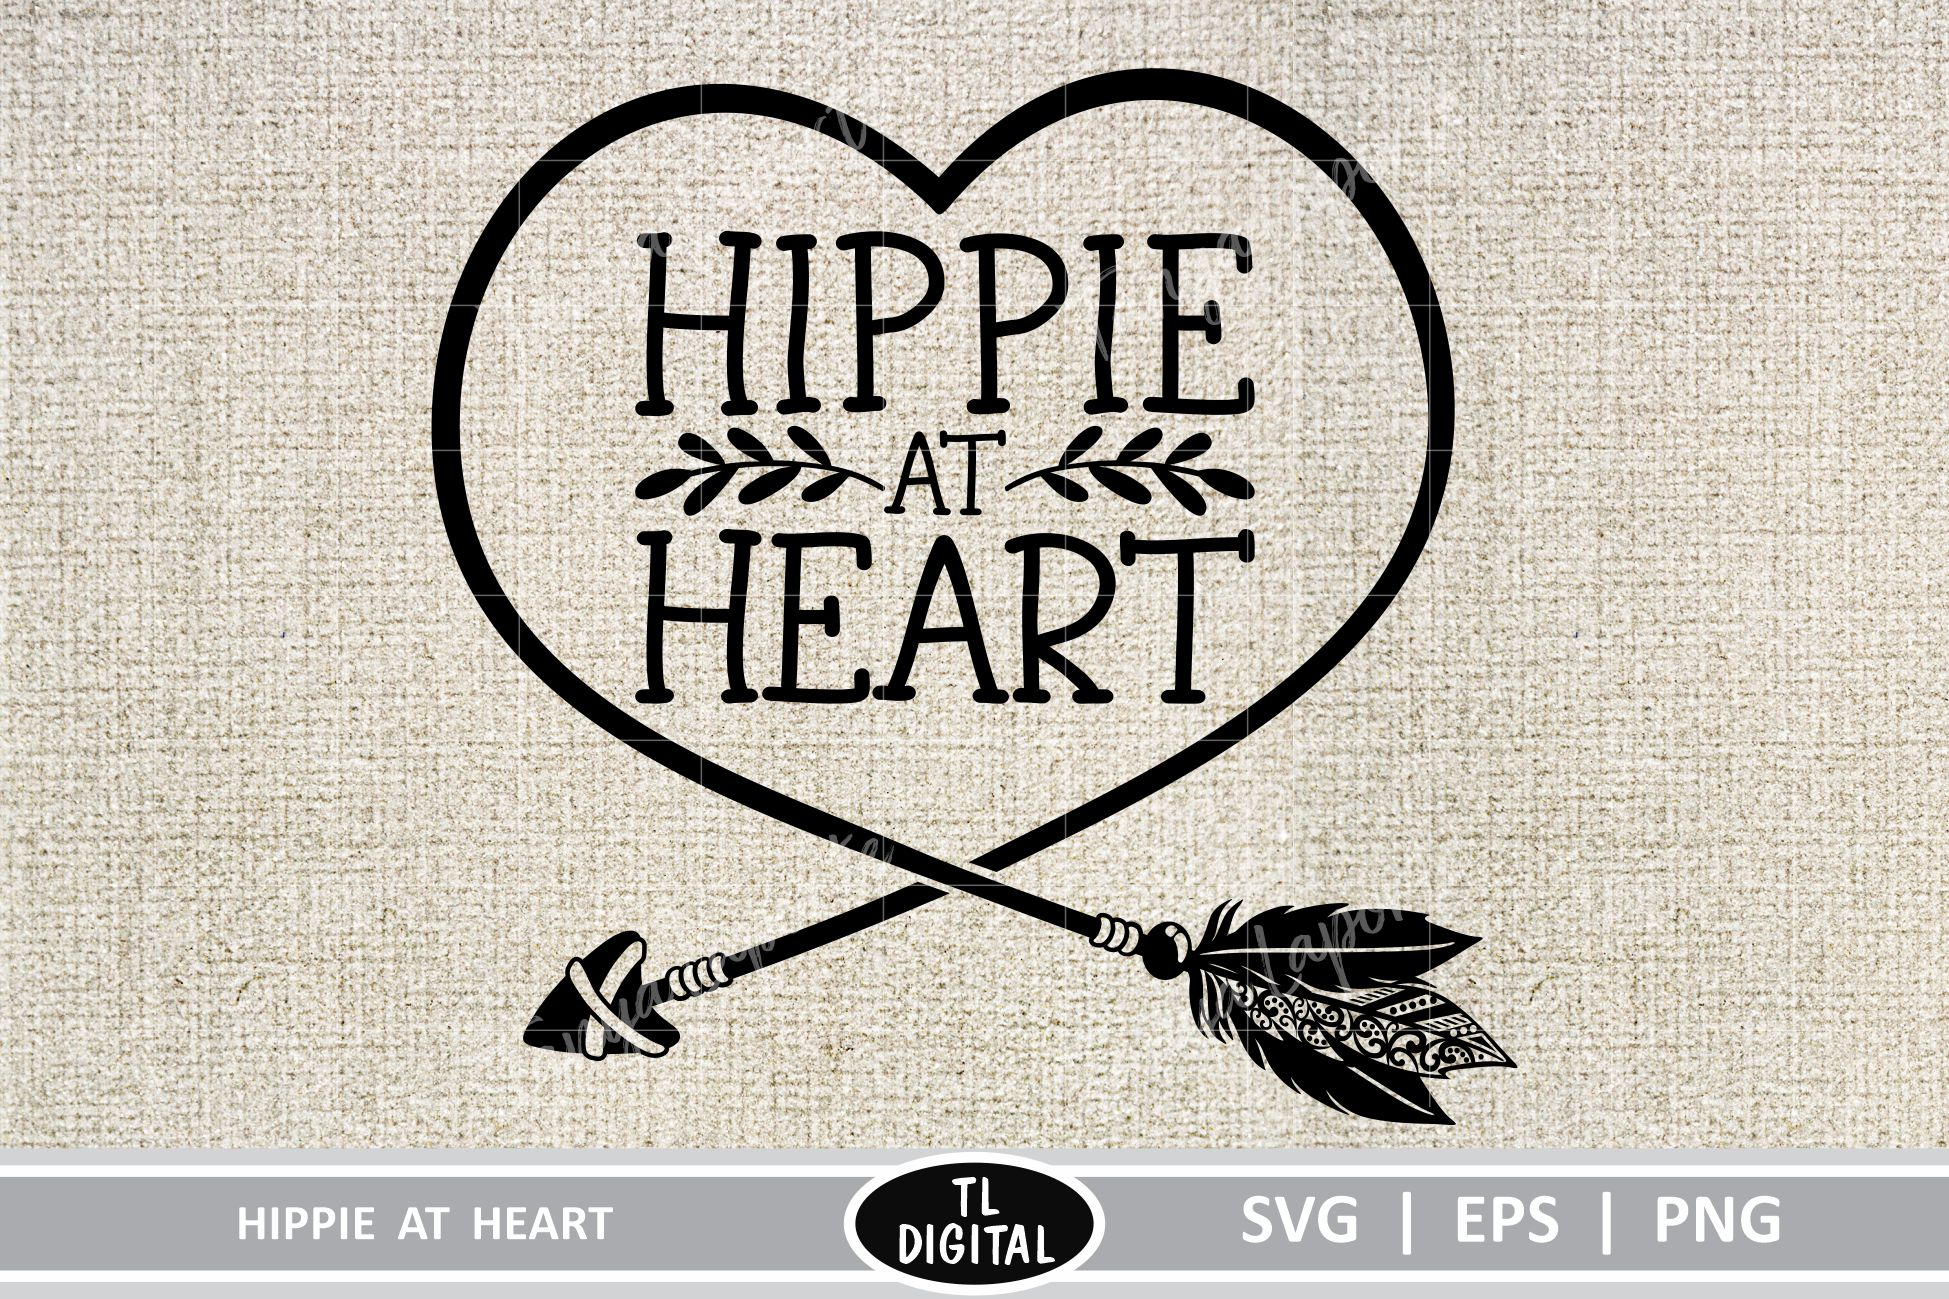 Download Free Hippie At Heart Graphic By Tl Digital Creative Fabrica for Cricut Explore, Silhouette and other cutting machines.